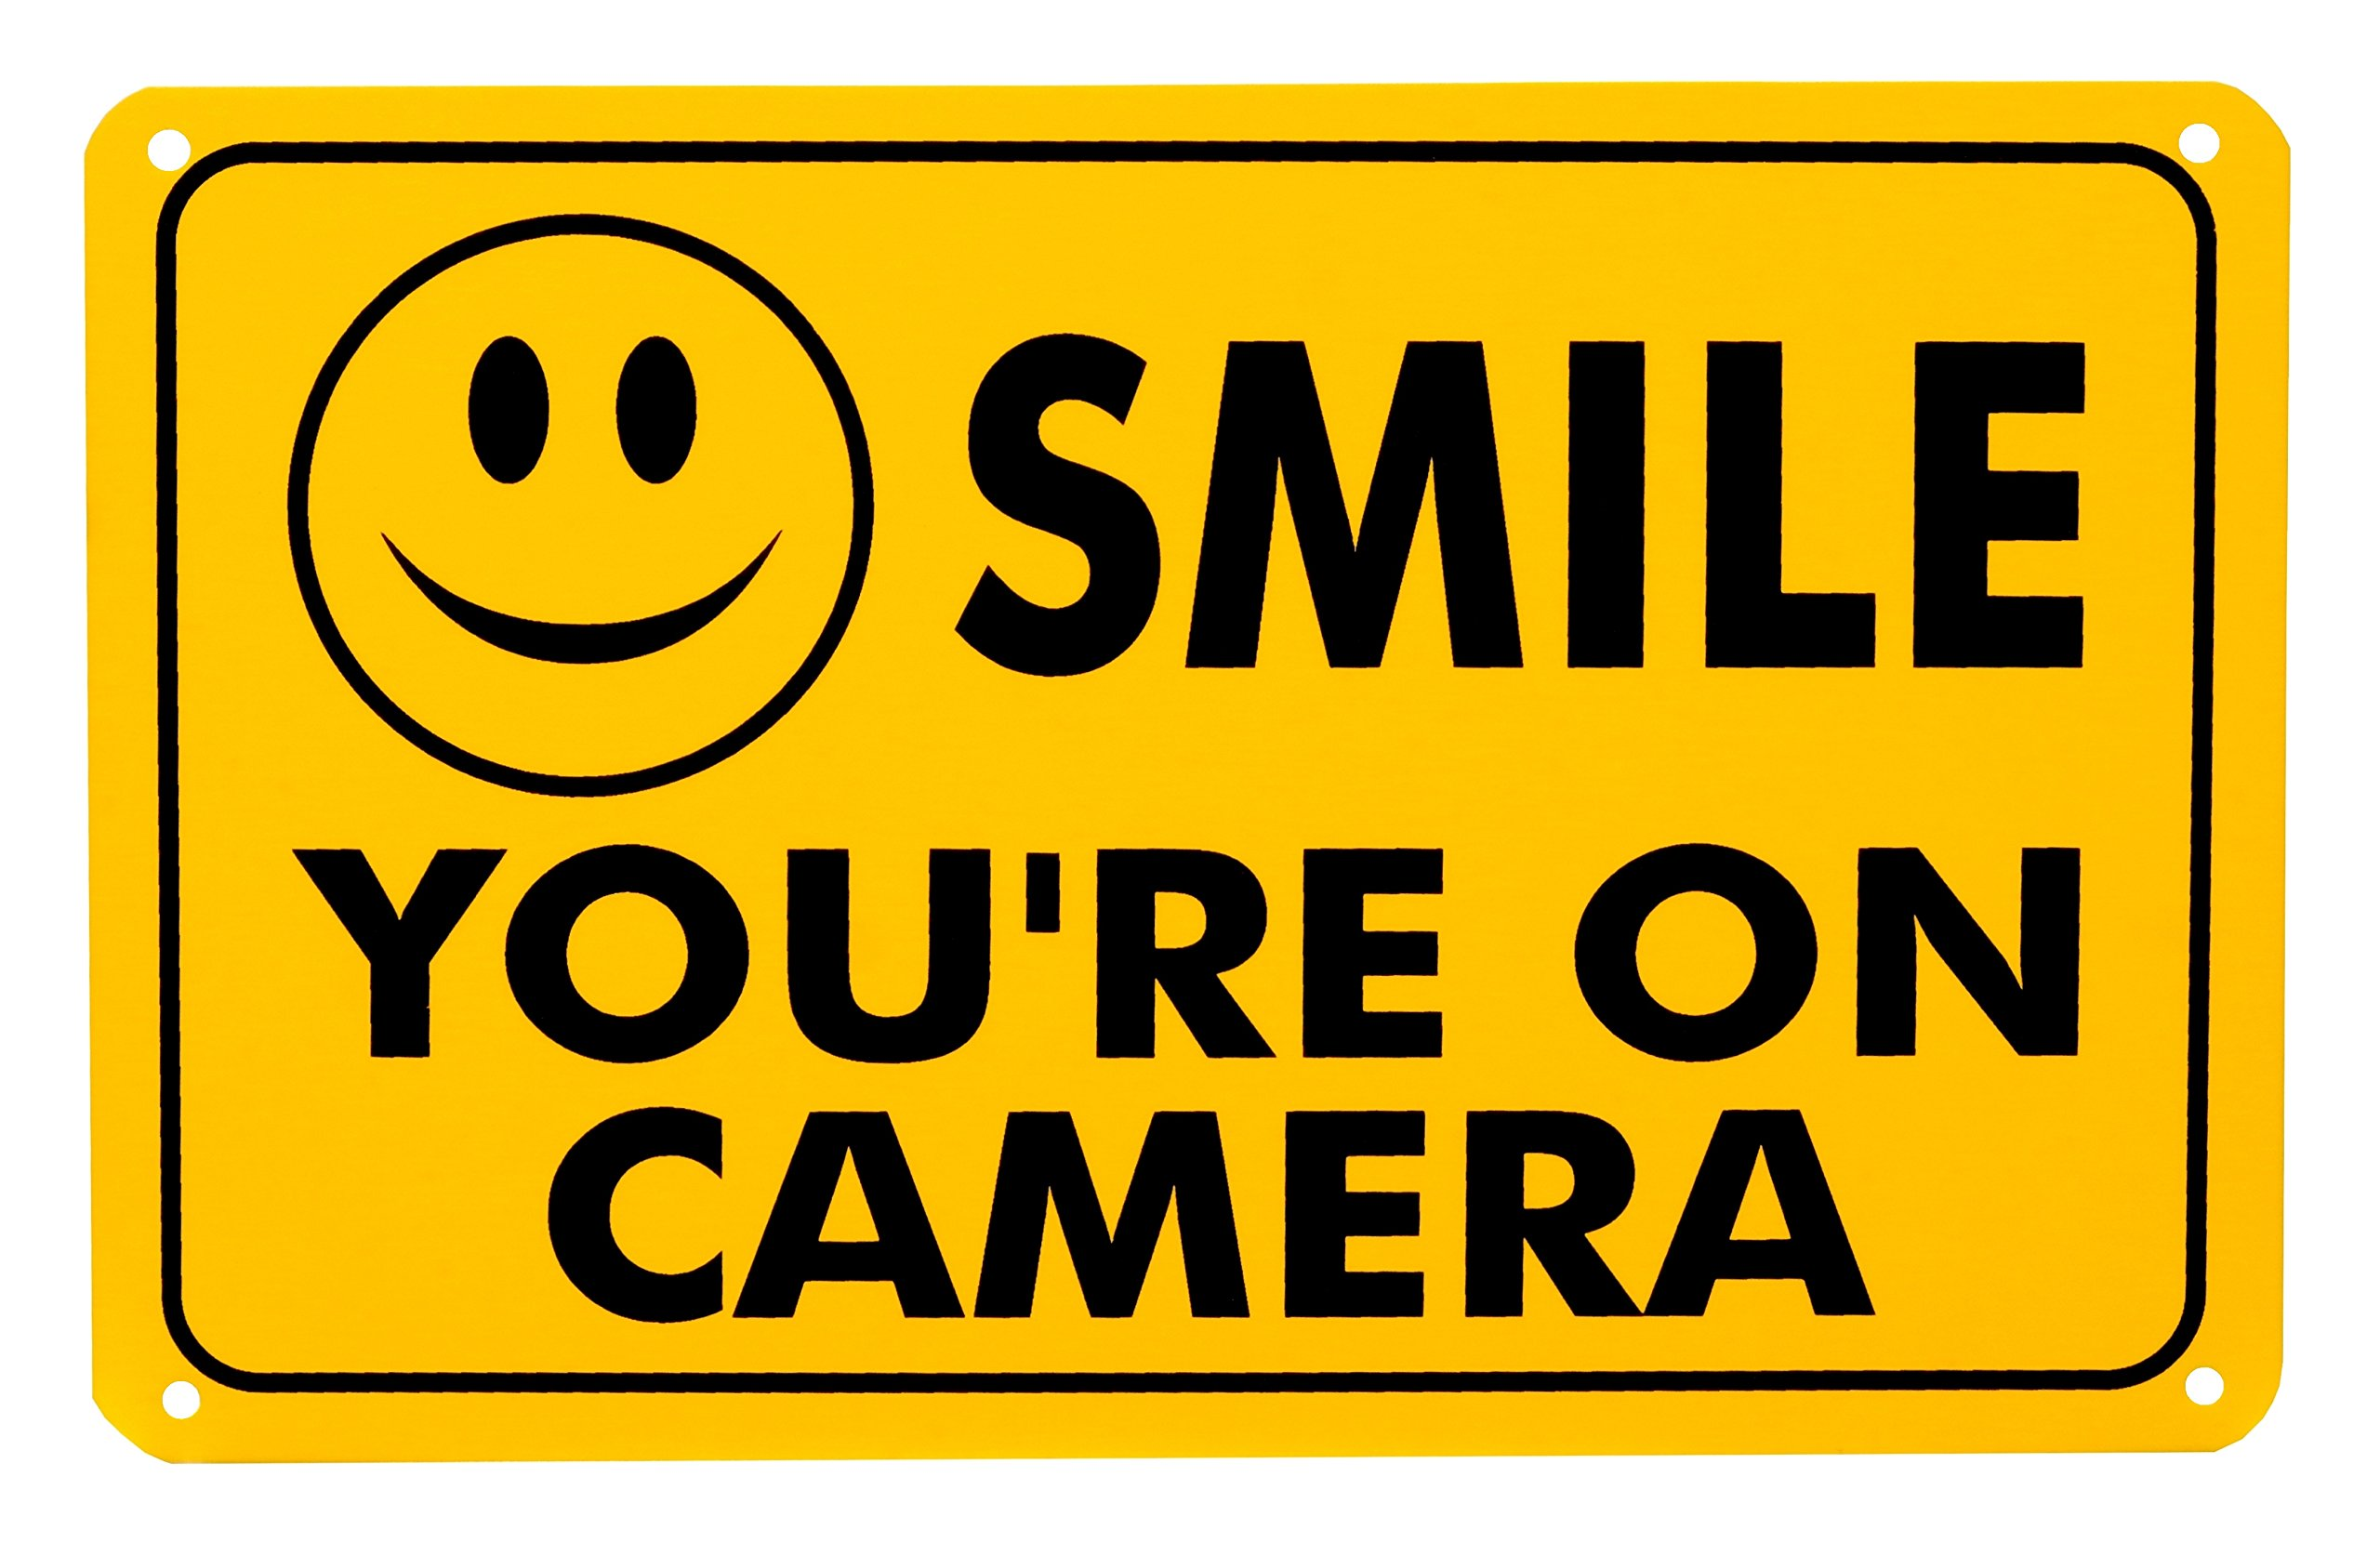 image relating to Smile You Re on Camera Sign Printable named Acquire Smile Youre Upon Digicam Rust Absolutely free Outside Water-proof Fade